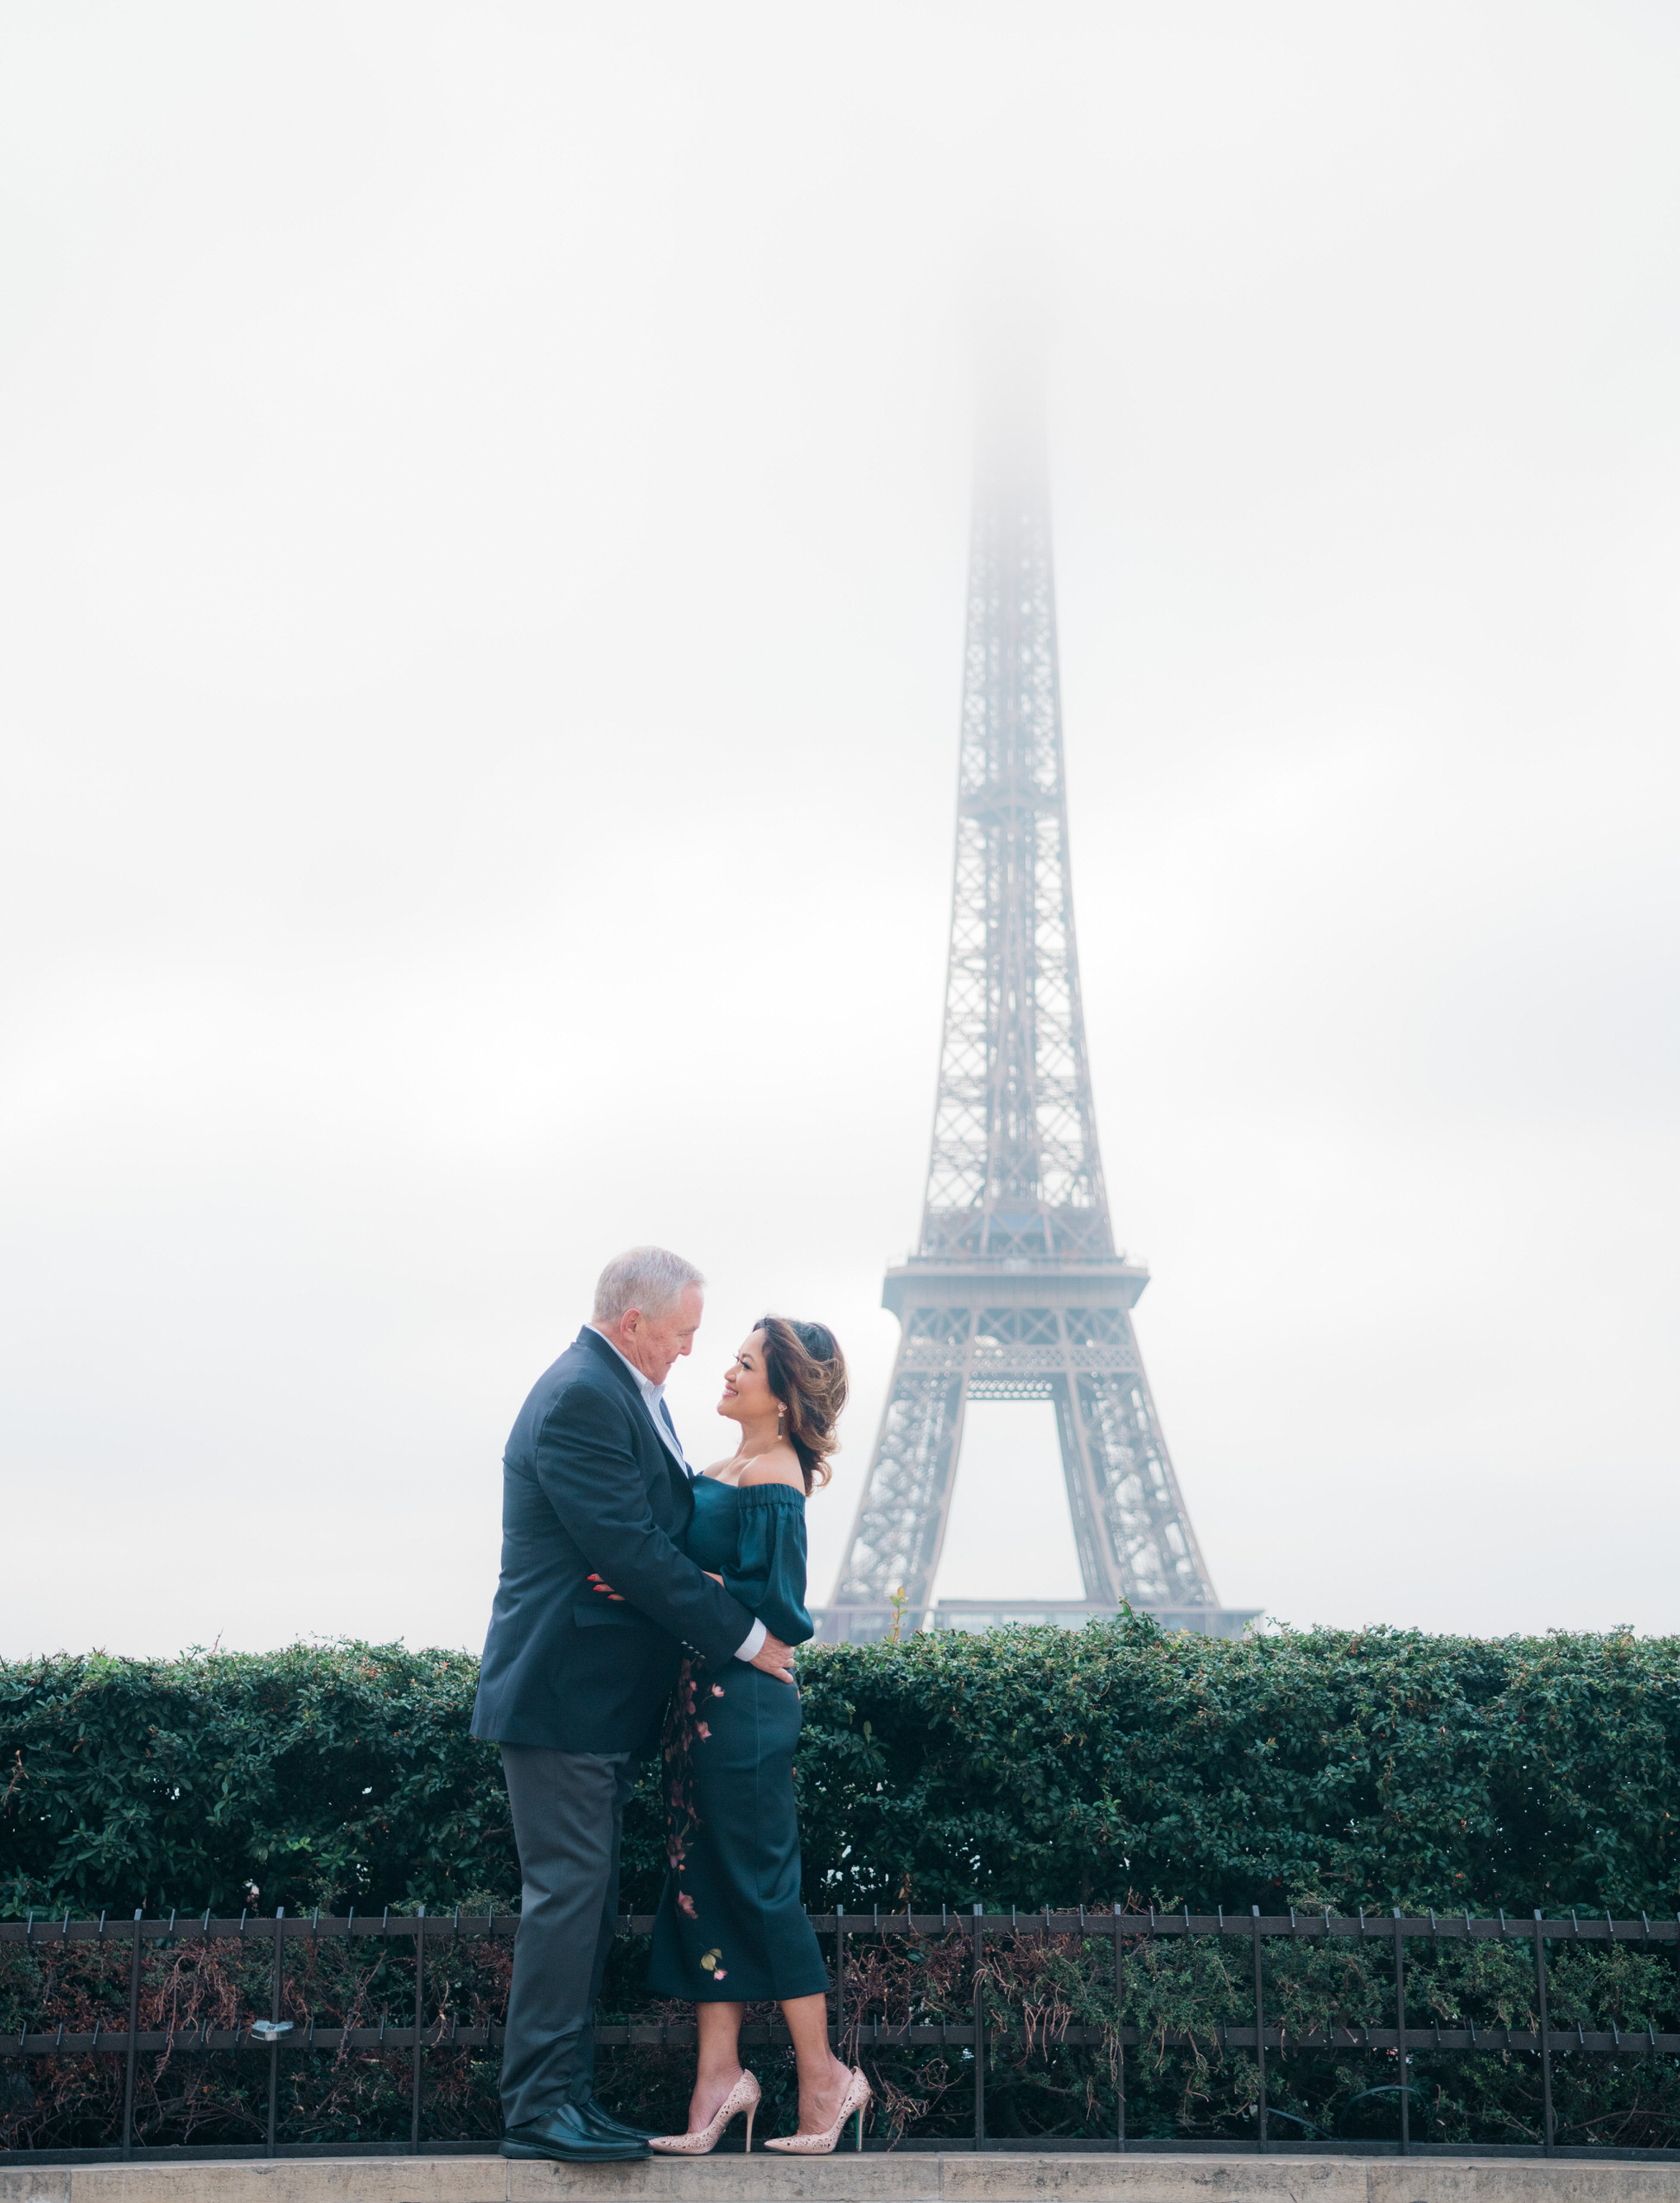 Celebrating a 10 year wedding anniversary in Paris style